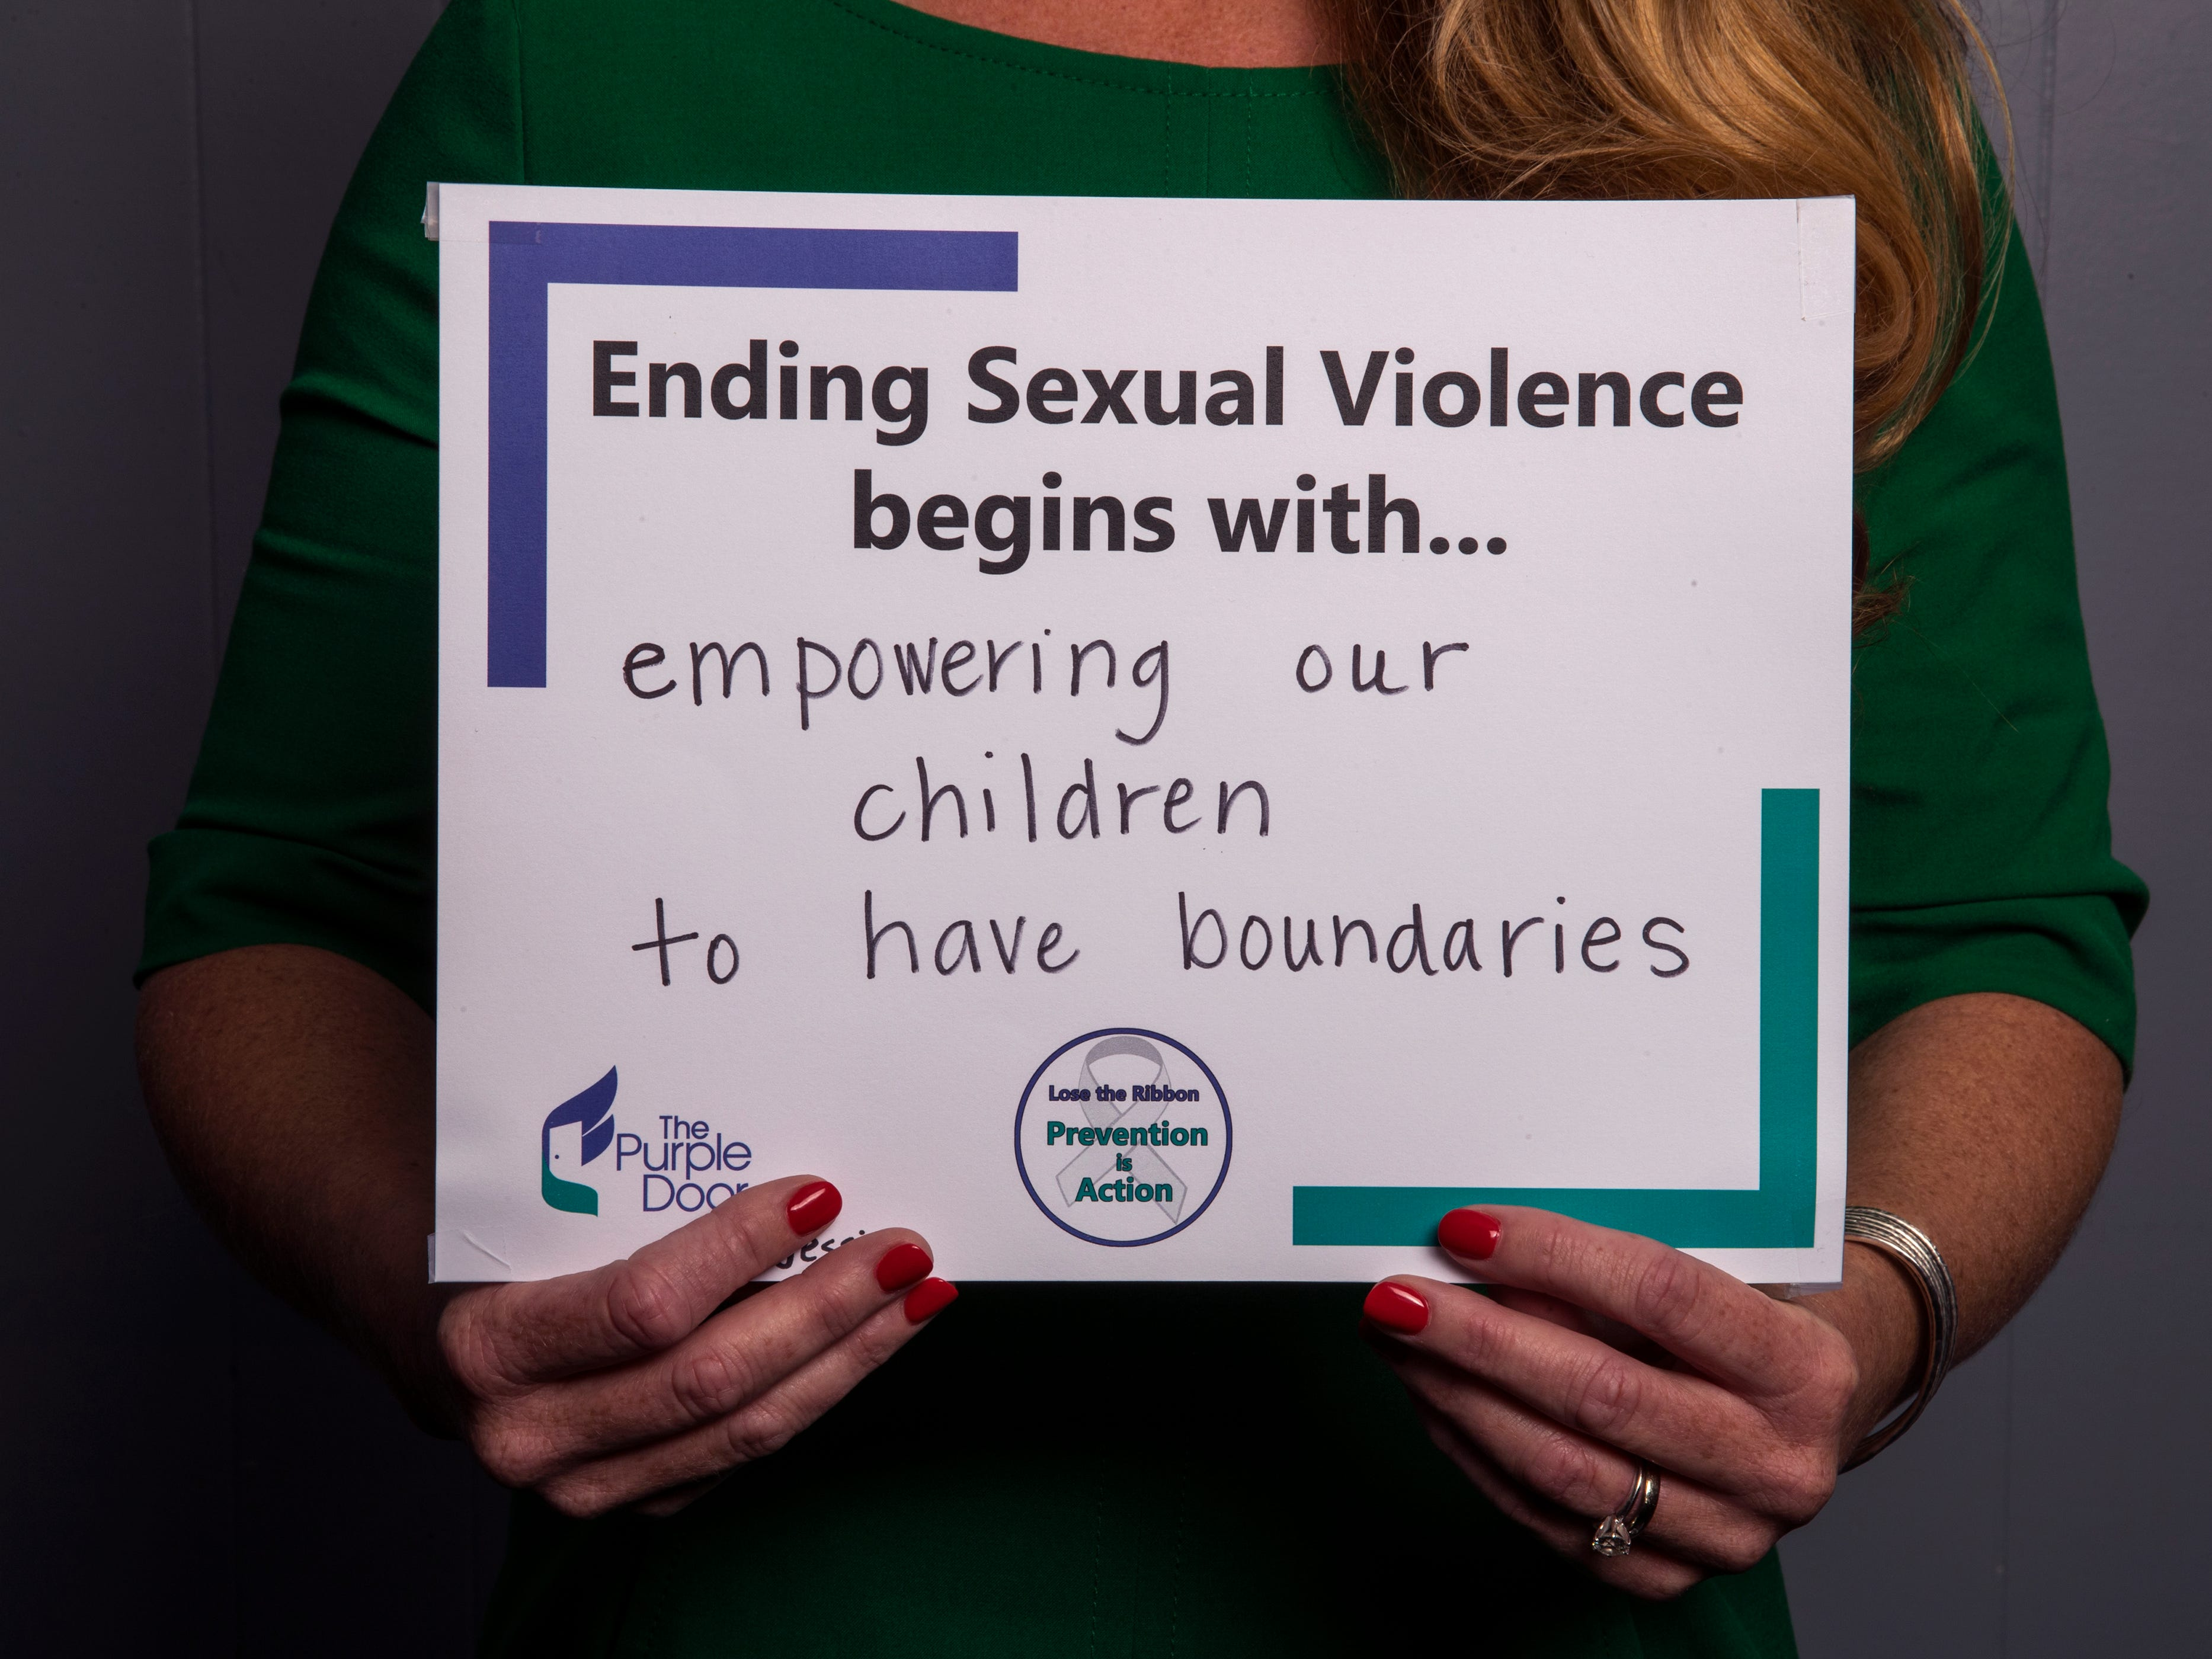 Jessica Saddler, non-residential services manager for The Purple Door, has pledged to empower children to have boundaries. She is one of several people to participate in The Purple Door's campaign for April's Sexual Assault Awareness Month, which encourages people to take action against sexual assault and violence.